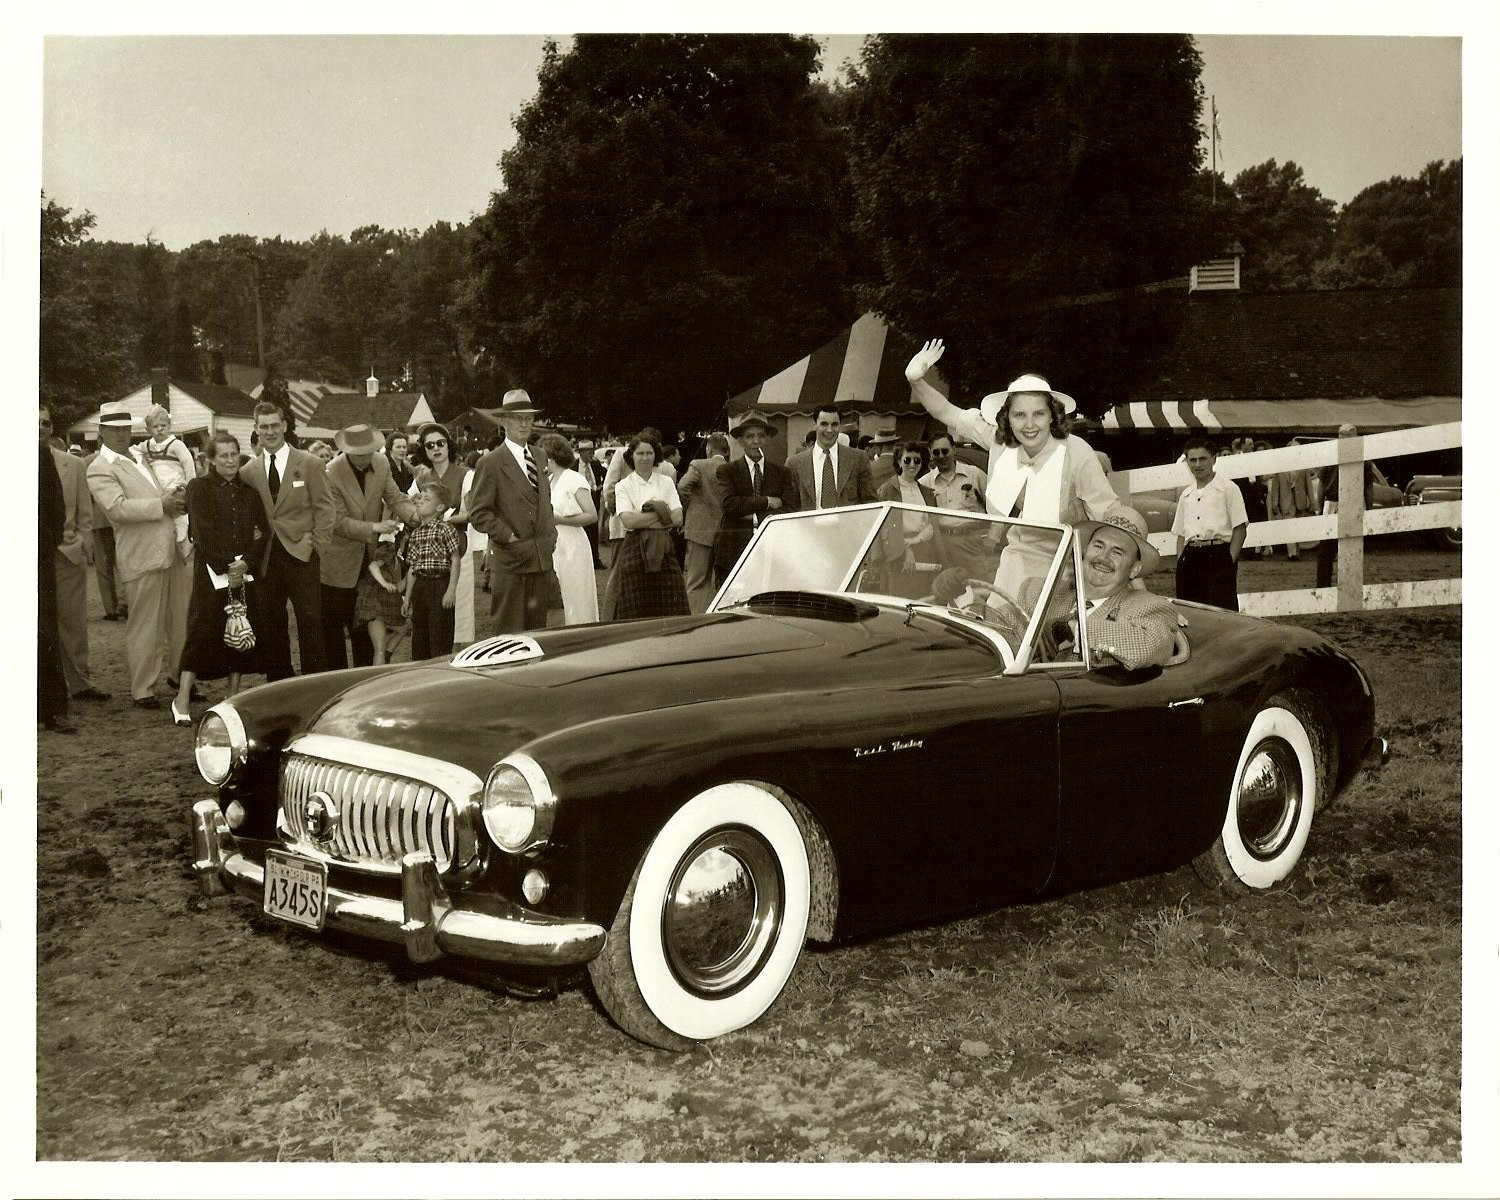 1951 NASH Healey with Paul Whiteman behind wheel John A. Conde Bloomfield Hills, Michigan 10″x8″ Black & White photograph